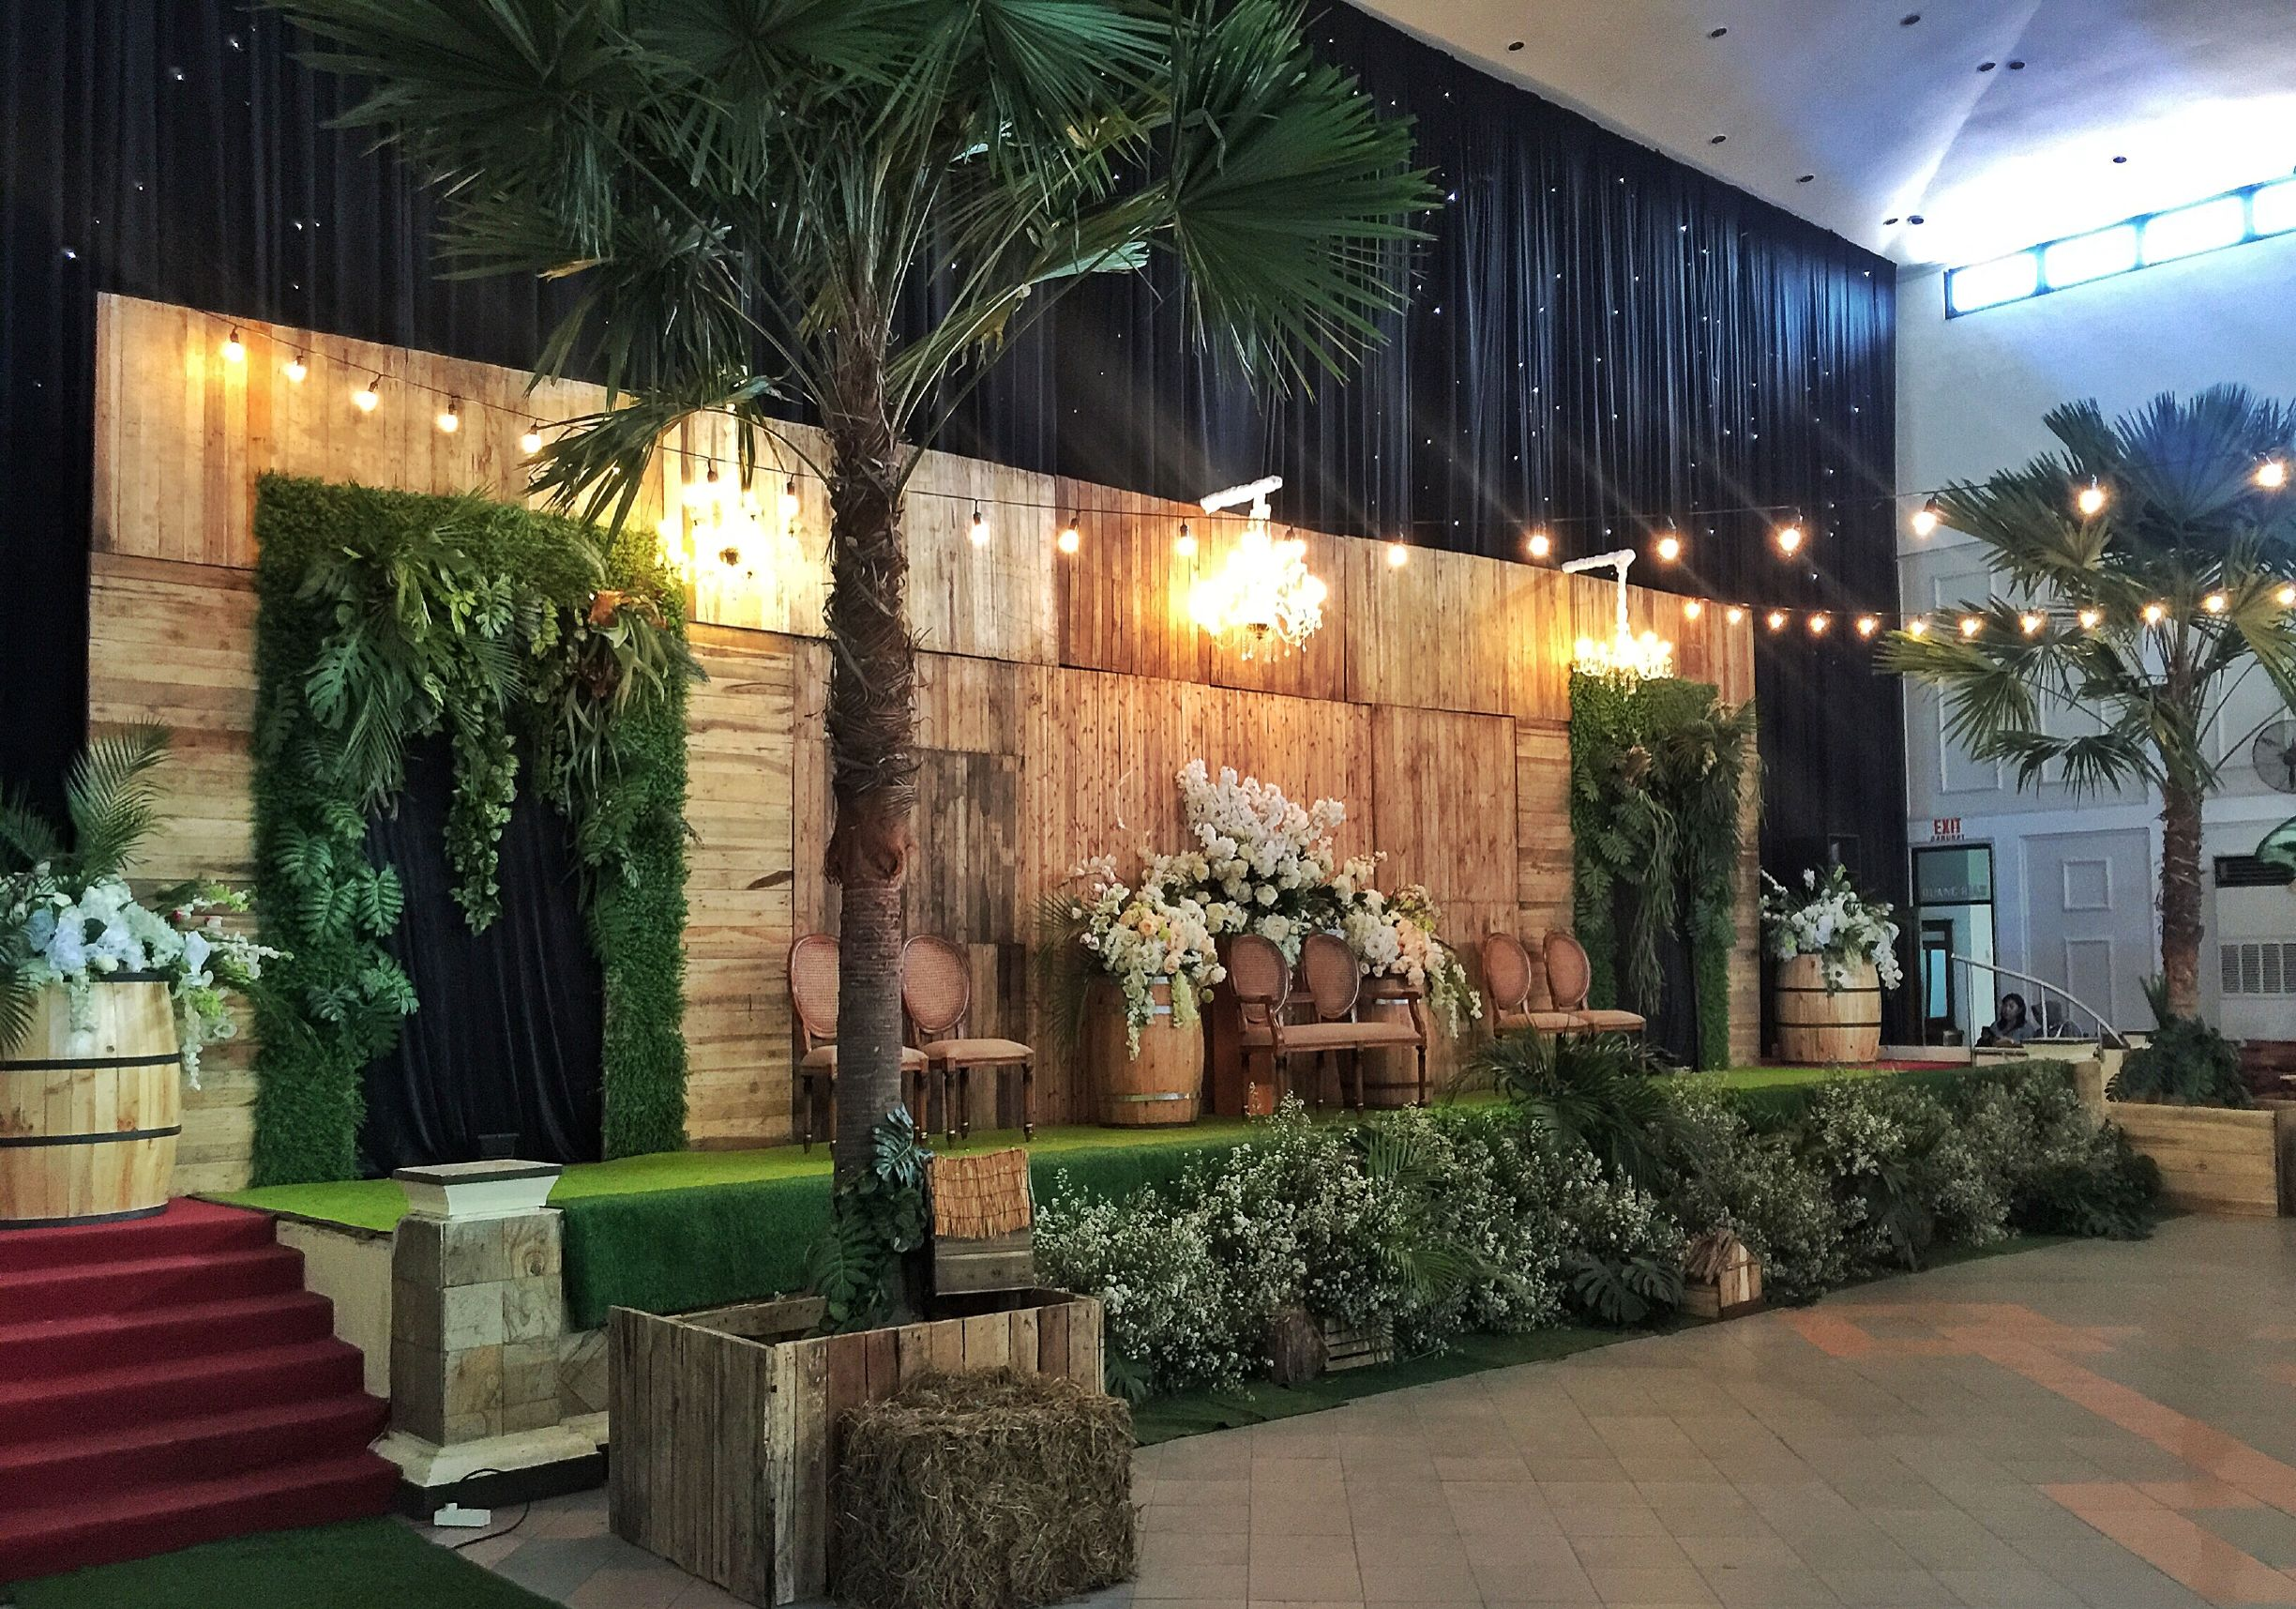 Wedding rustic indoor surabaya indonesia by raindropsdeco wedding rustic indoor surabaya indonesia by raindropsdeco junglespirit Gallery